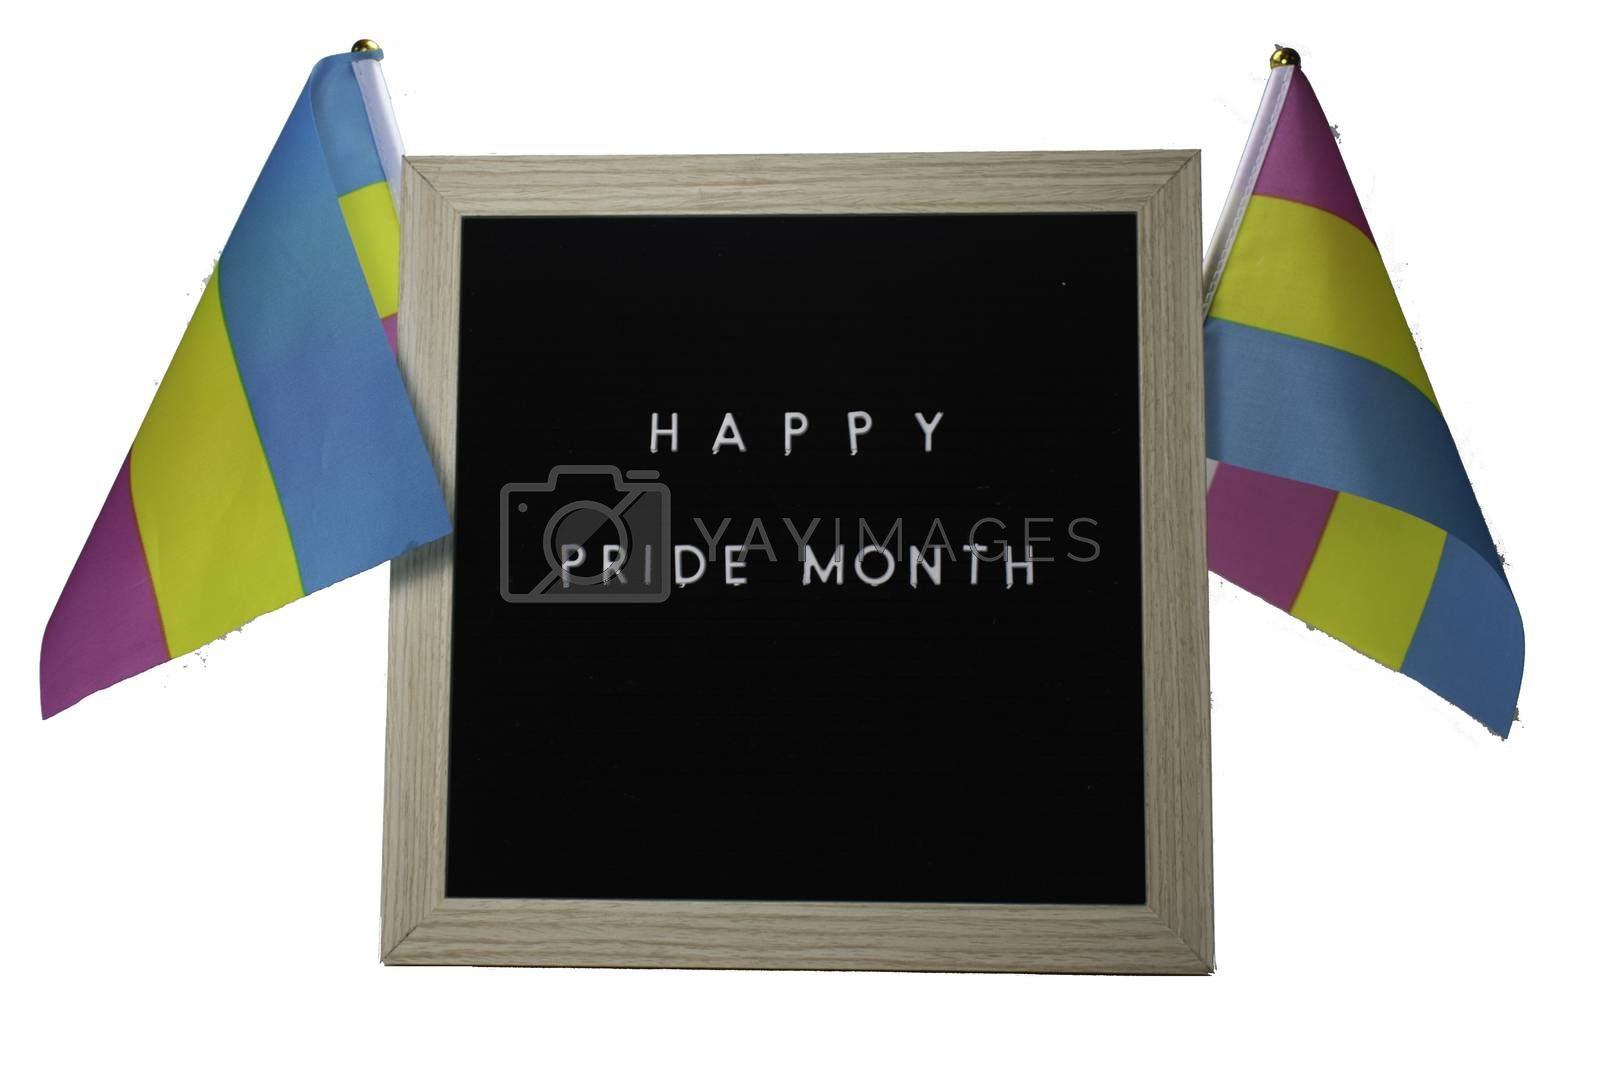 A Black Sign With a Birch Frame That Says Happy Pride Month in White Letters With Pride Flags Behind It on a Pure White Background